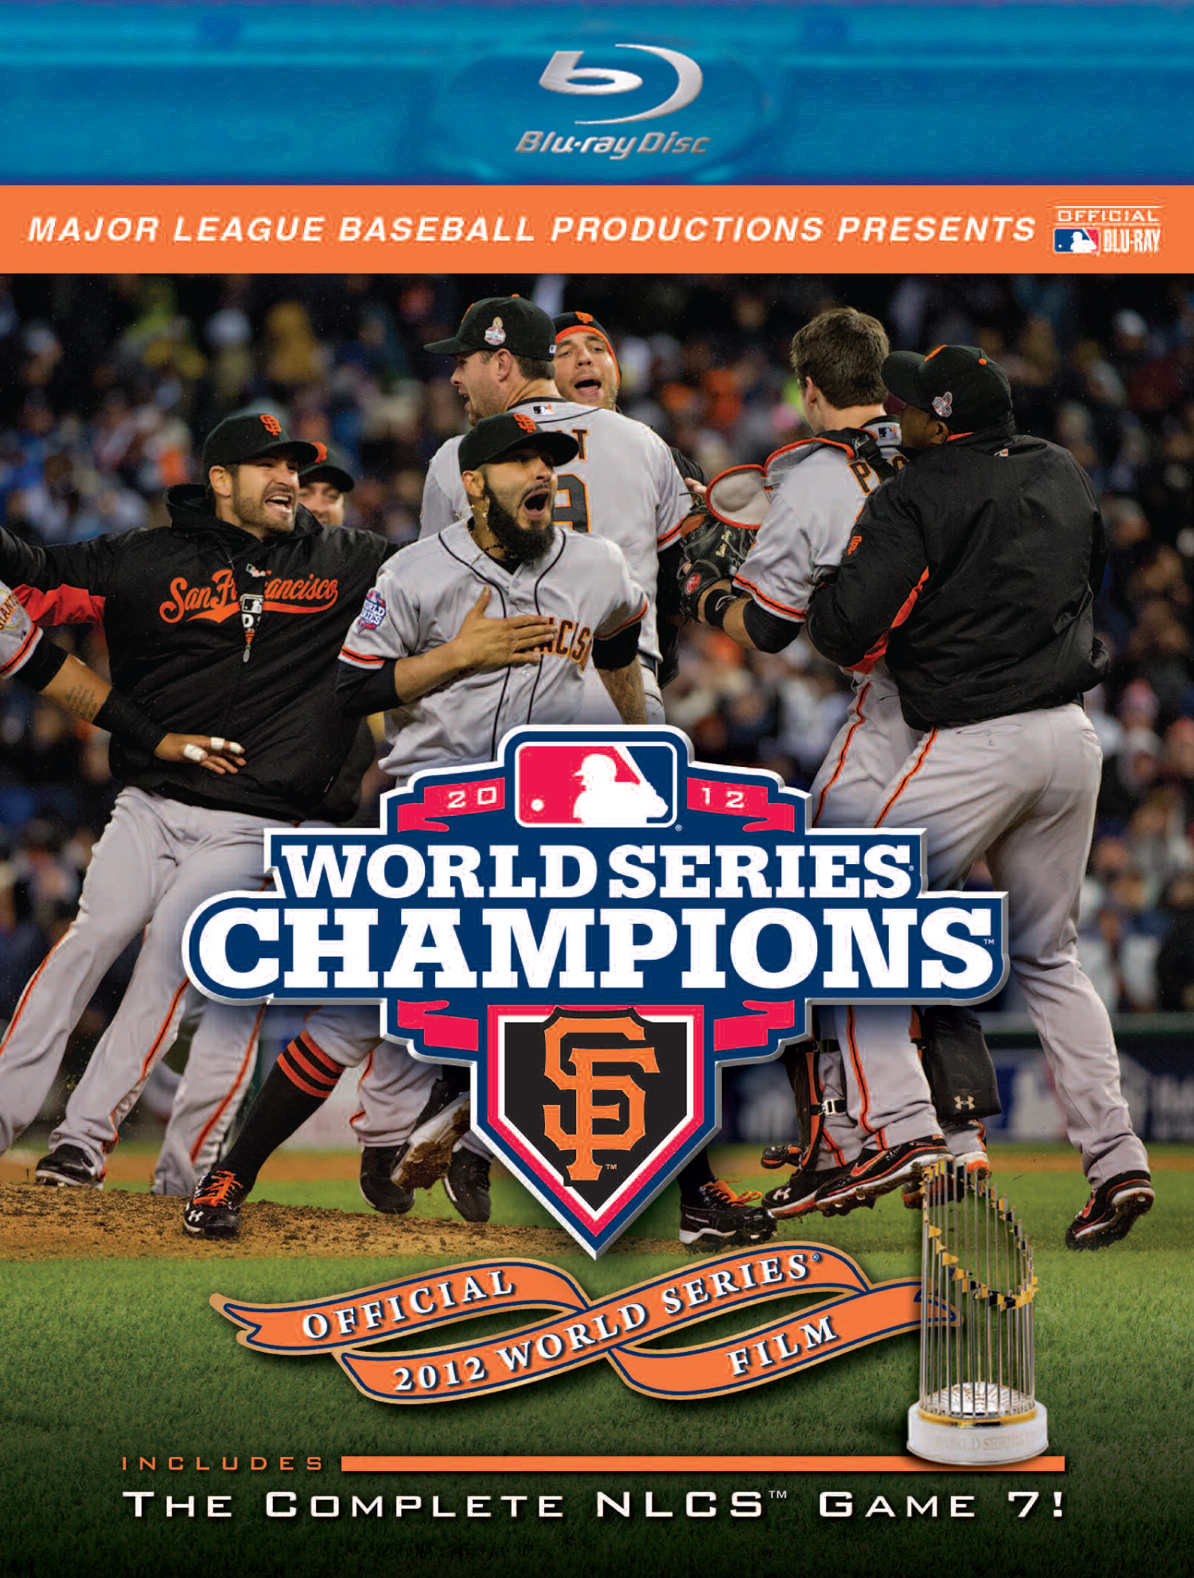 MLB: Official 2012 World Series Film